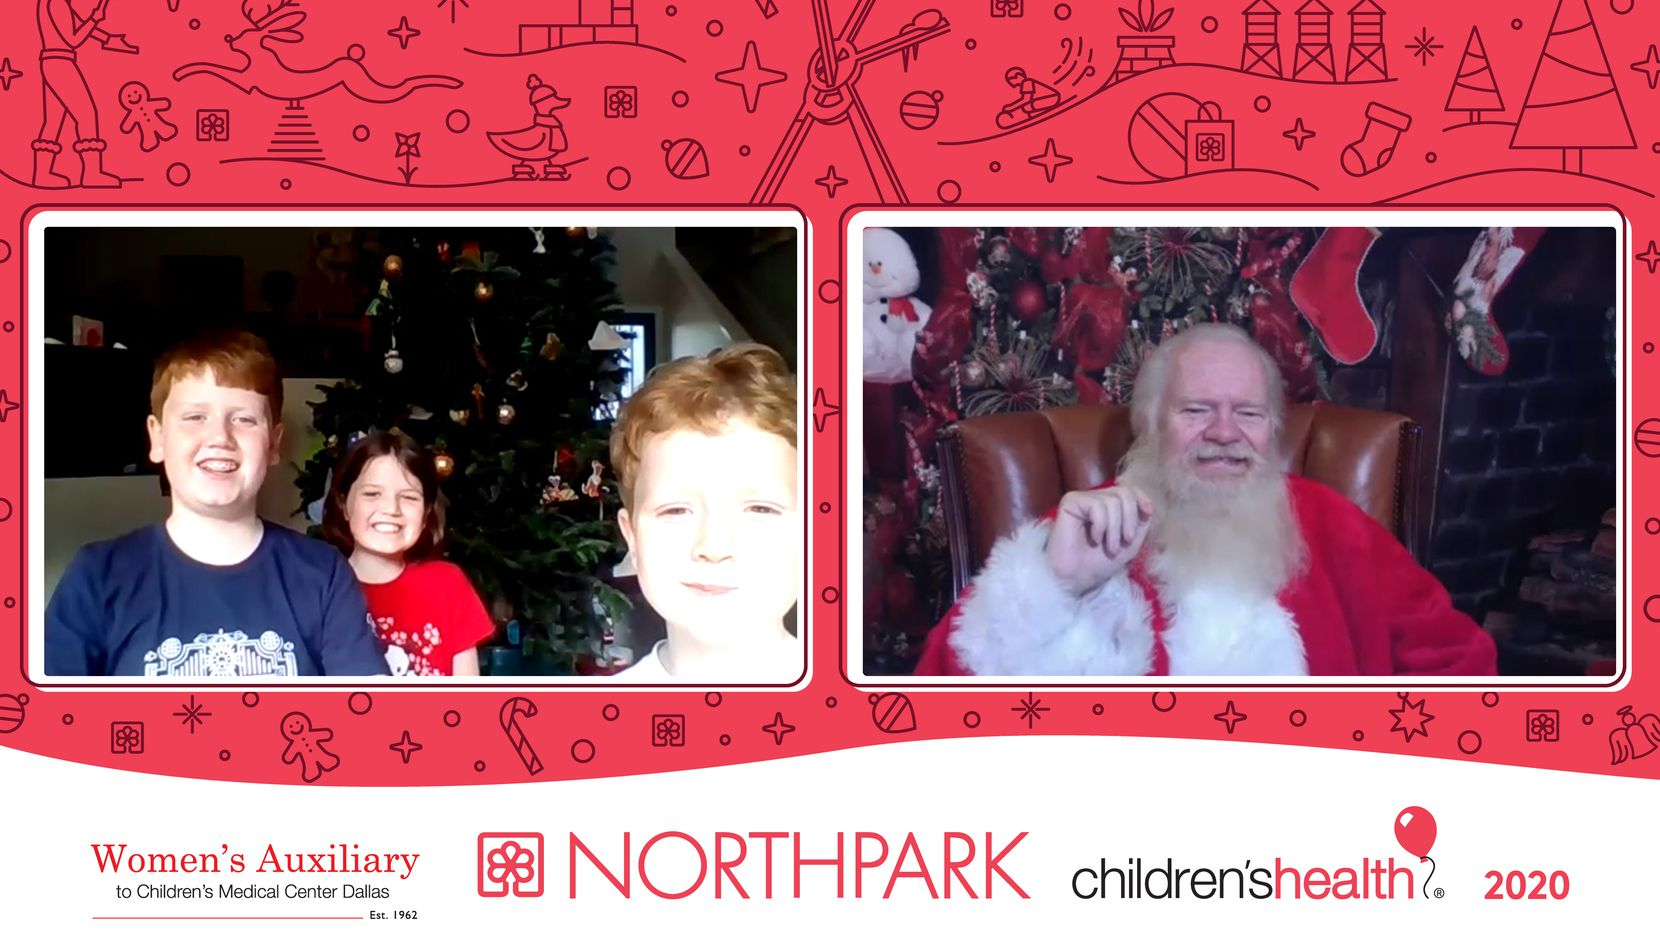 Carl Anderson portrayed Santa online in 2020 due to COVID precautions. Each family received a photo and video of the visit, and proceeds went to Children's Health. In this photo Anderson visits with Benjamin, Ruby and Samuel Philyaw.